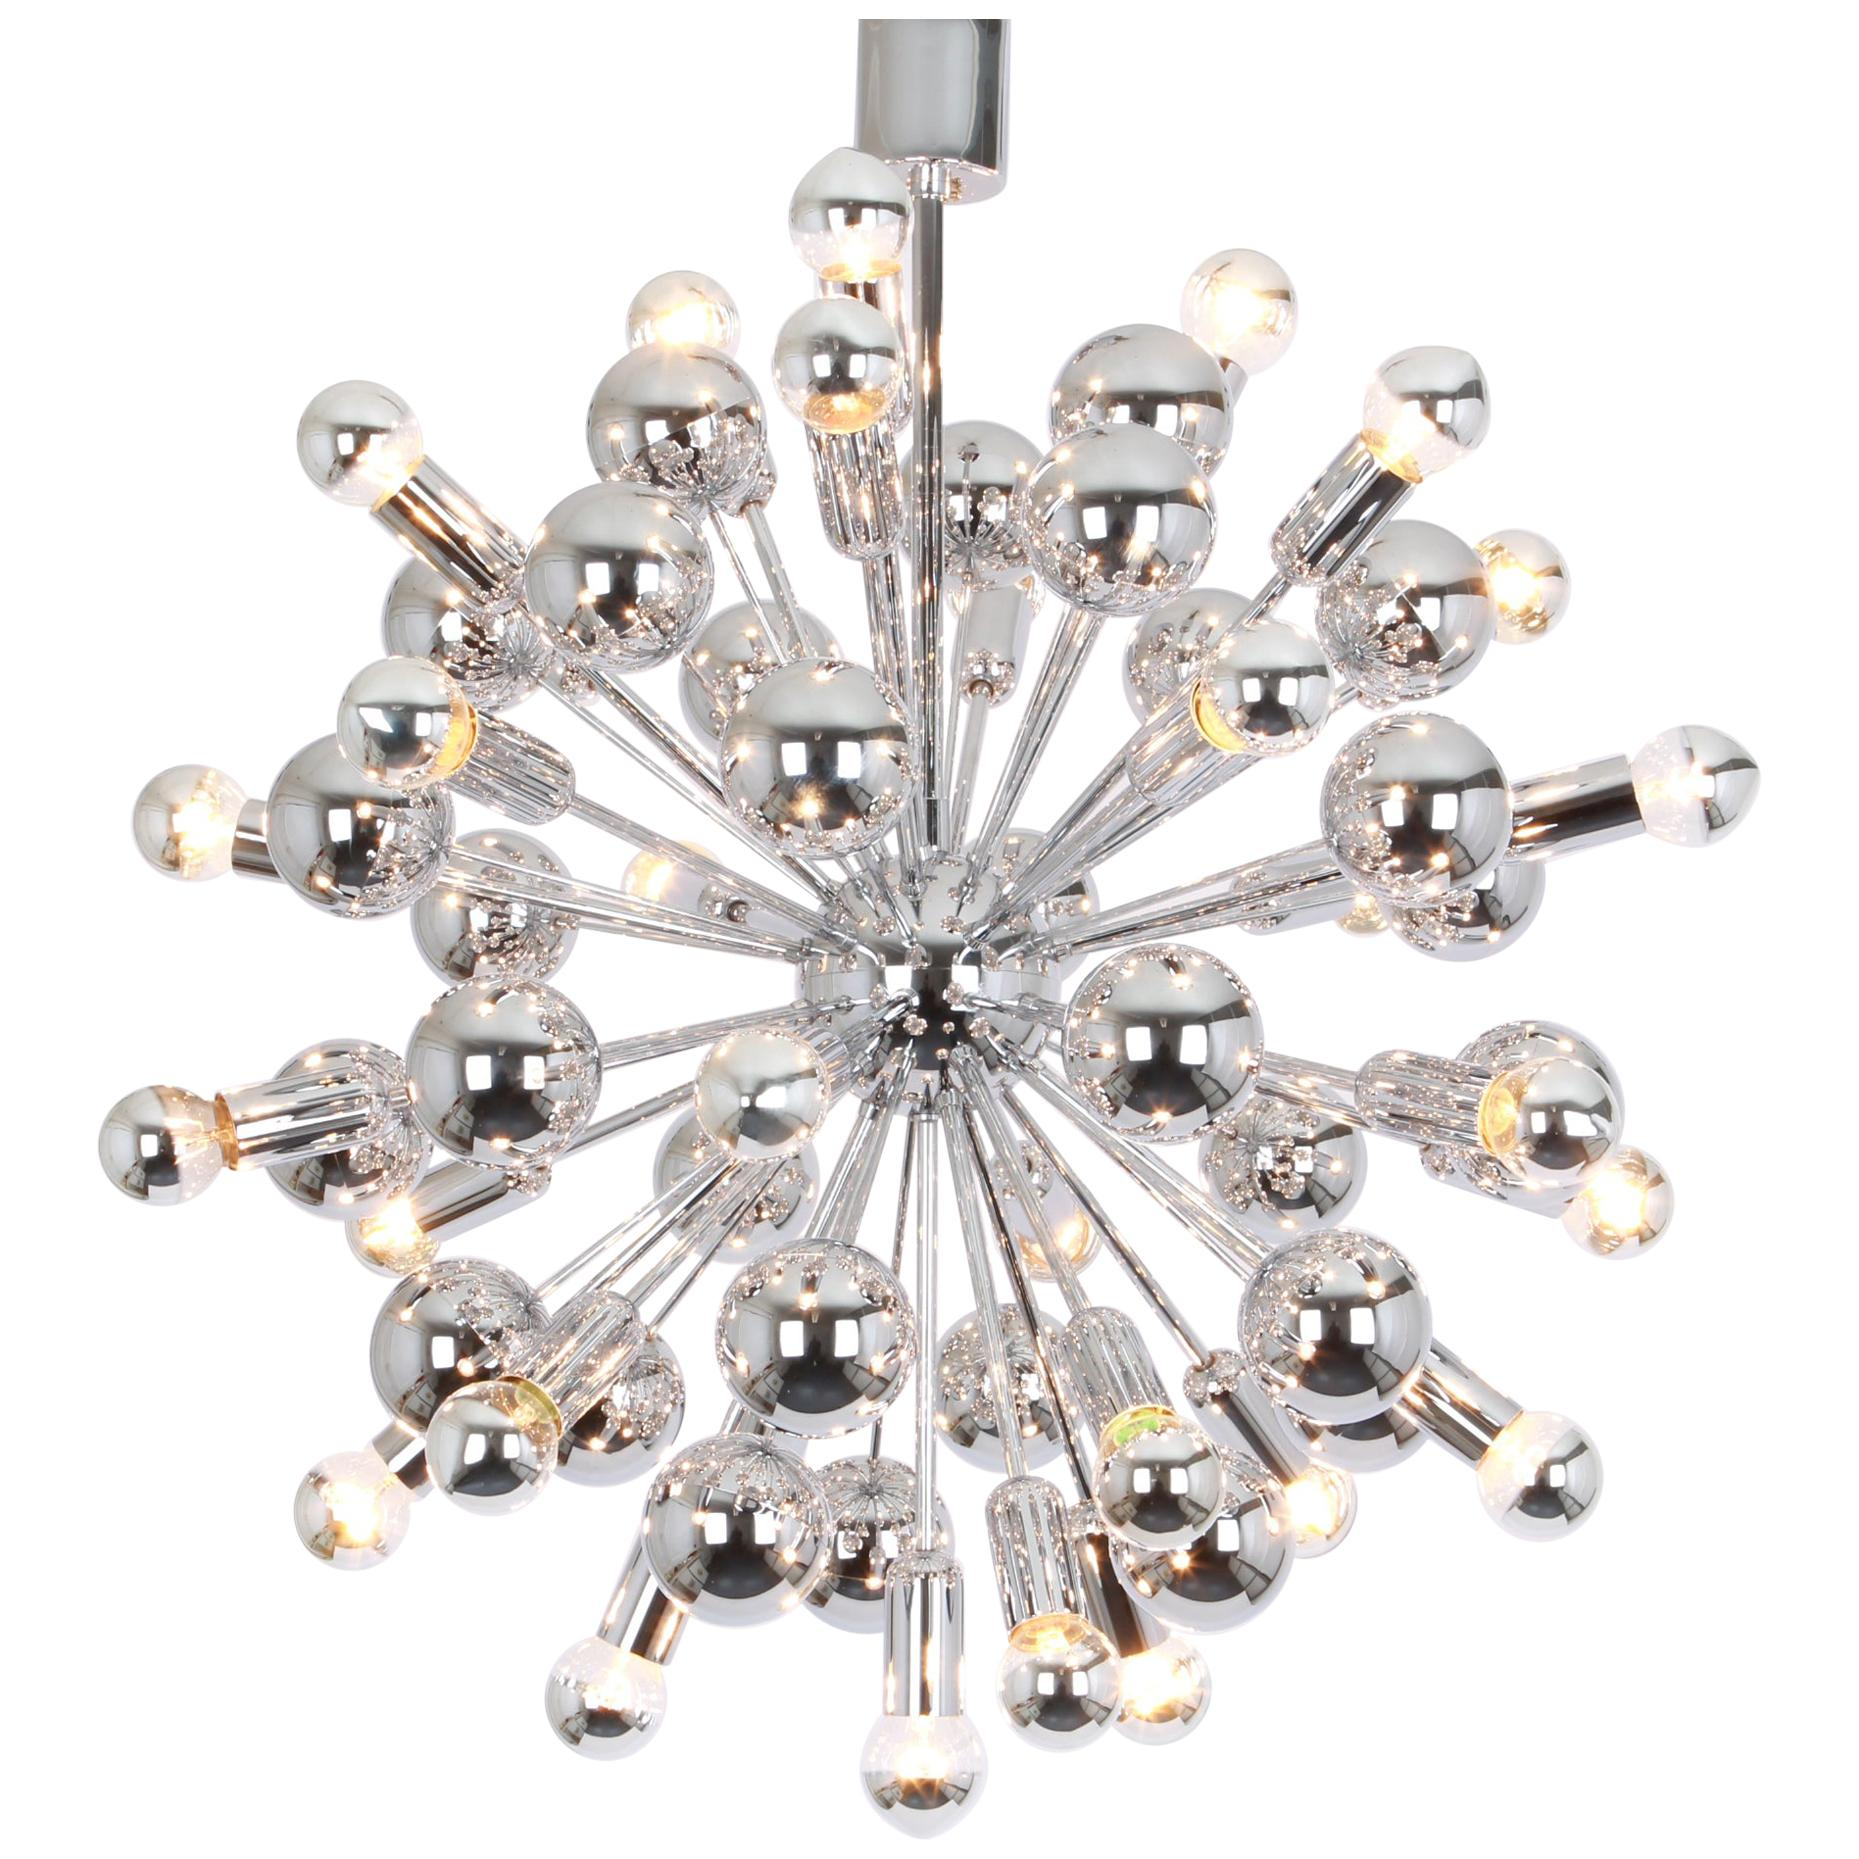 1 of 2 Large Chrome Space Age Sputnik Chandelier by Cosack, Germany, 1970s